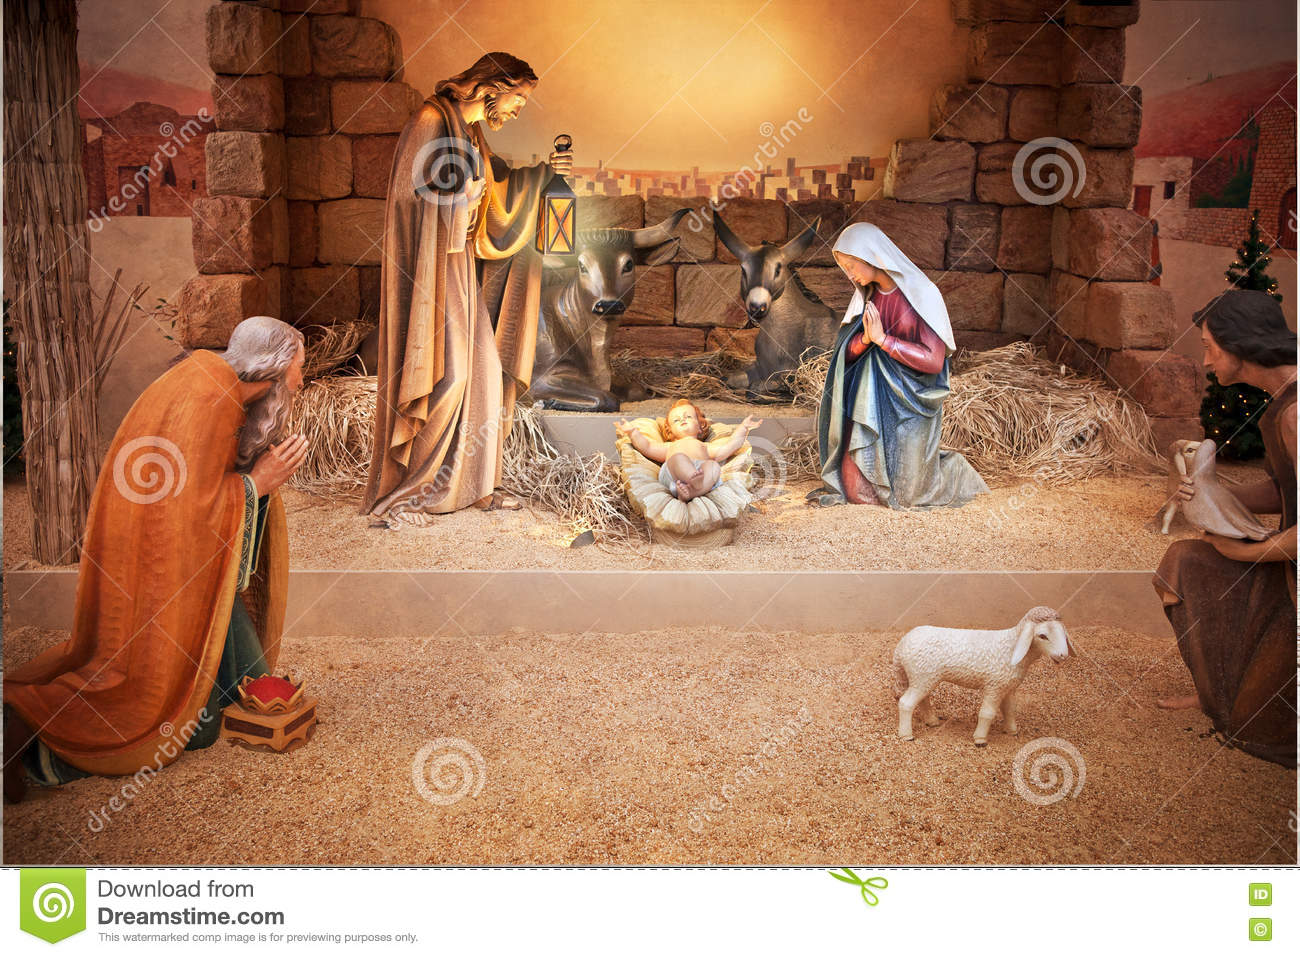 Christmas Jesus Birth Images.Christmas Jesus Birth Nativity Stock Image Image Of Birth